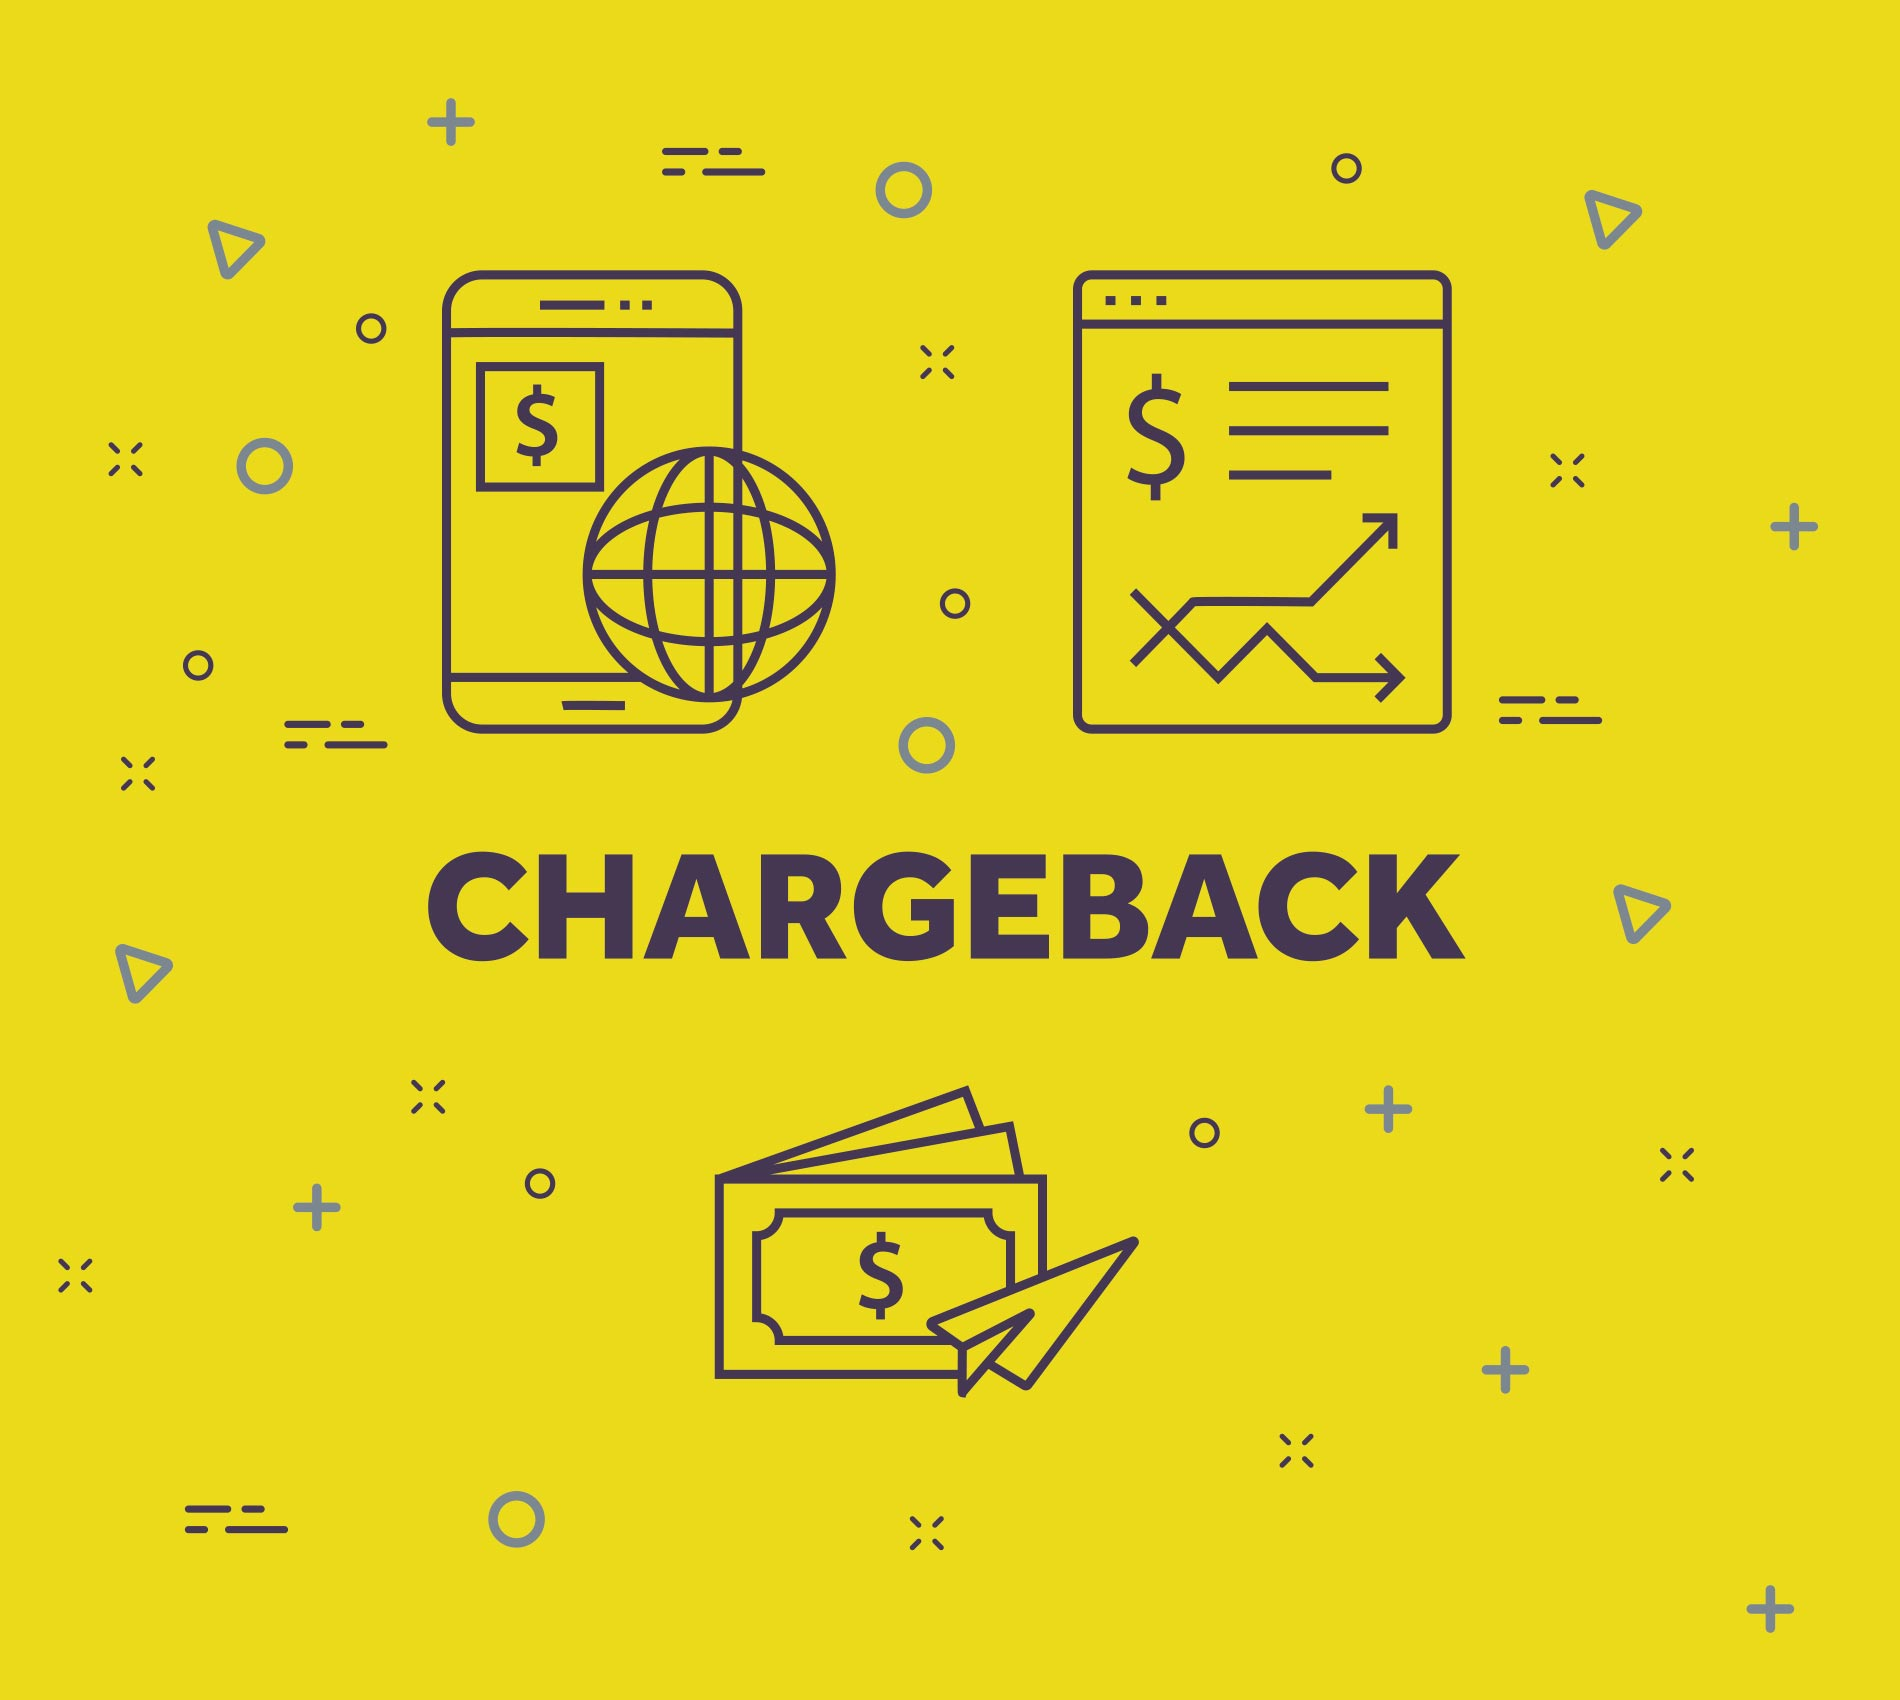 Why Does It Seem So Easy to File a Chargeback in Brazil?